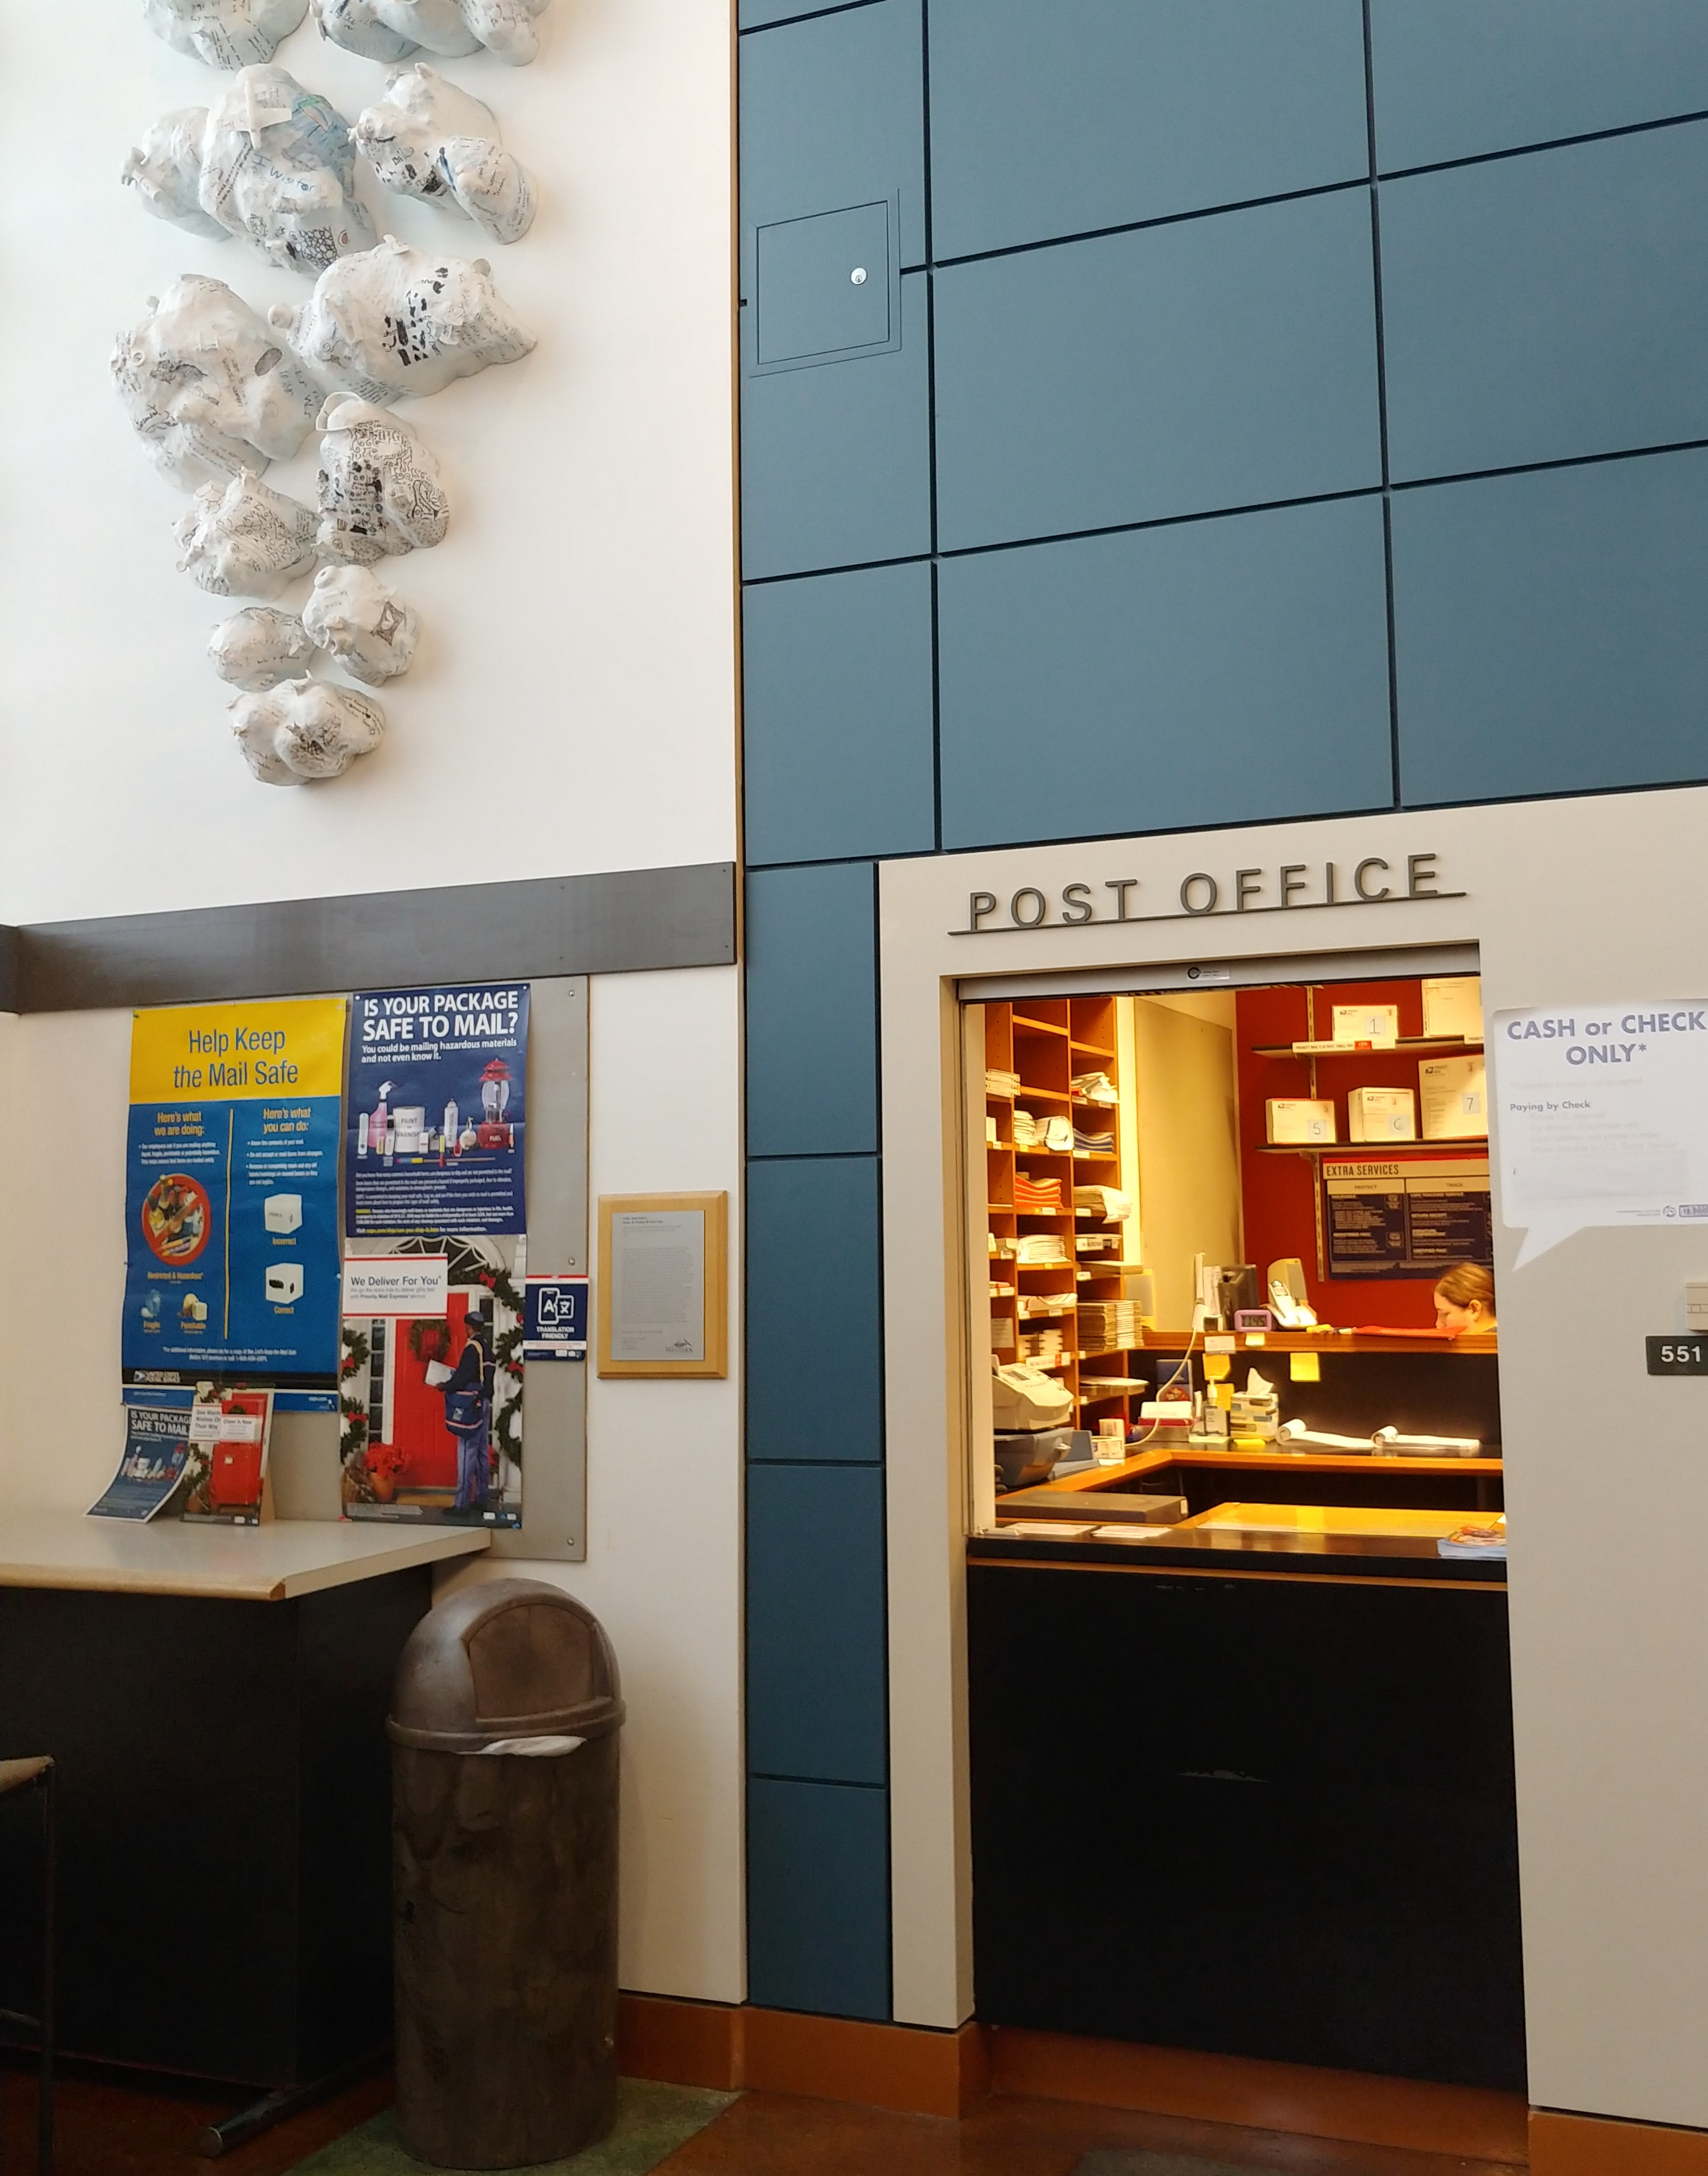 Post Office Business Services